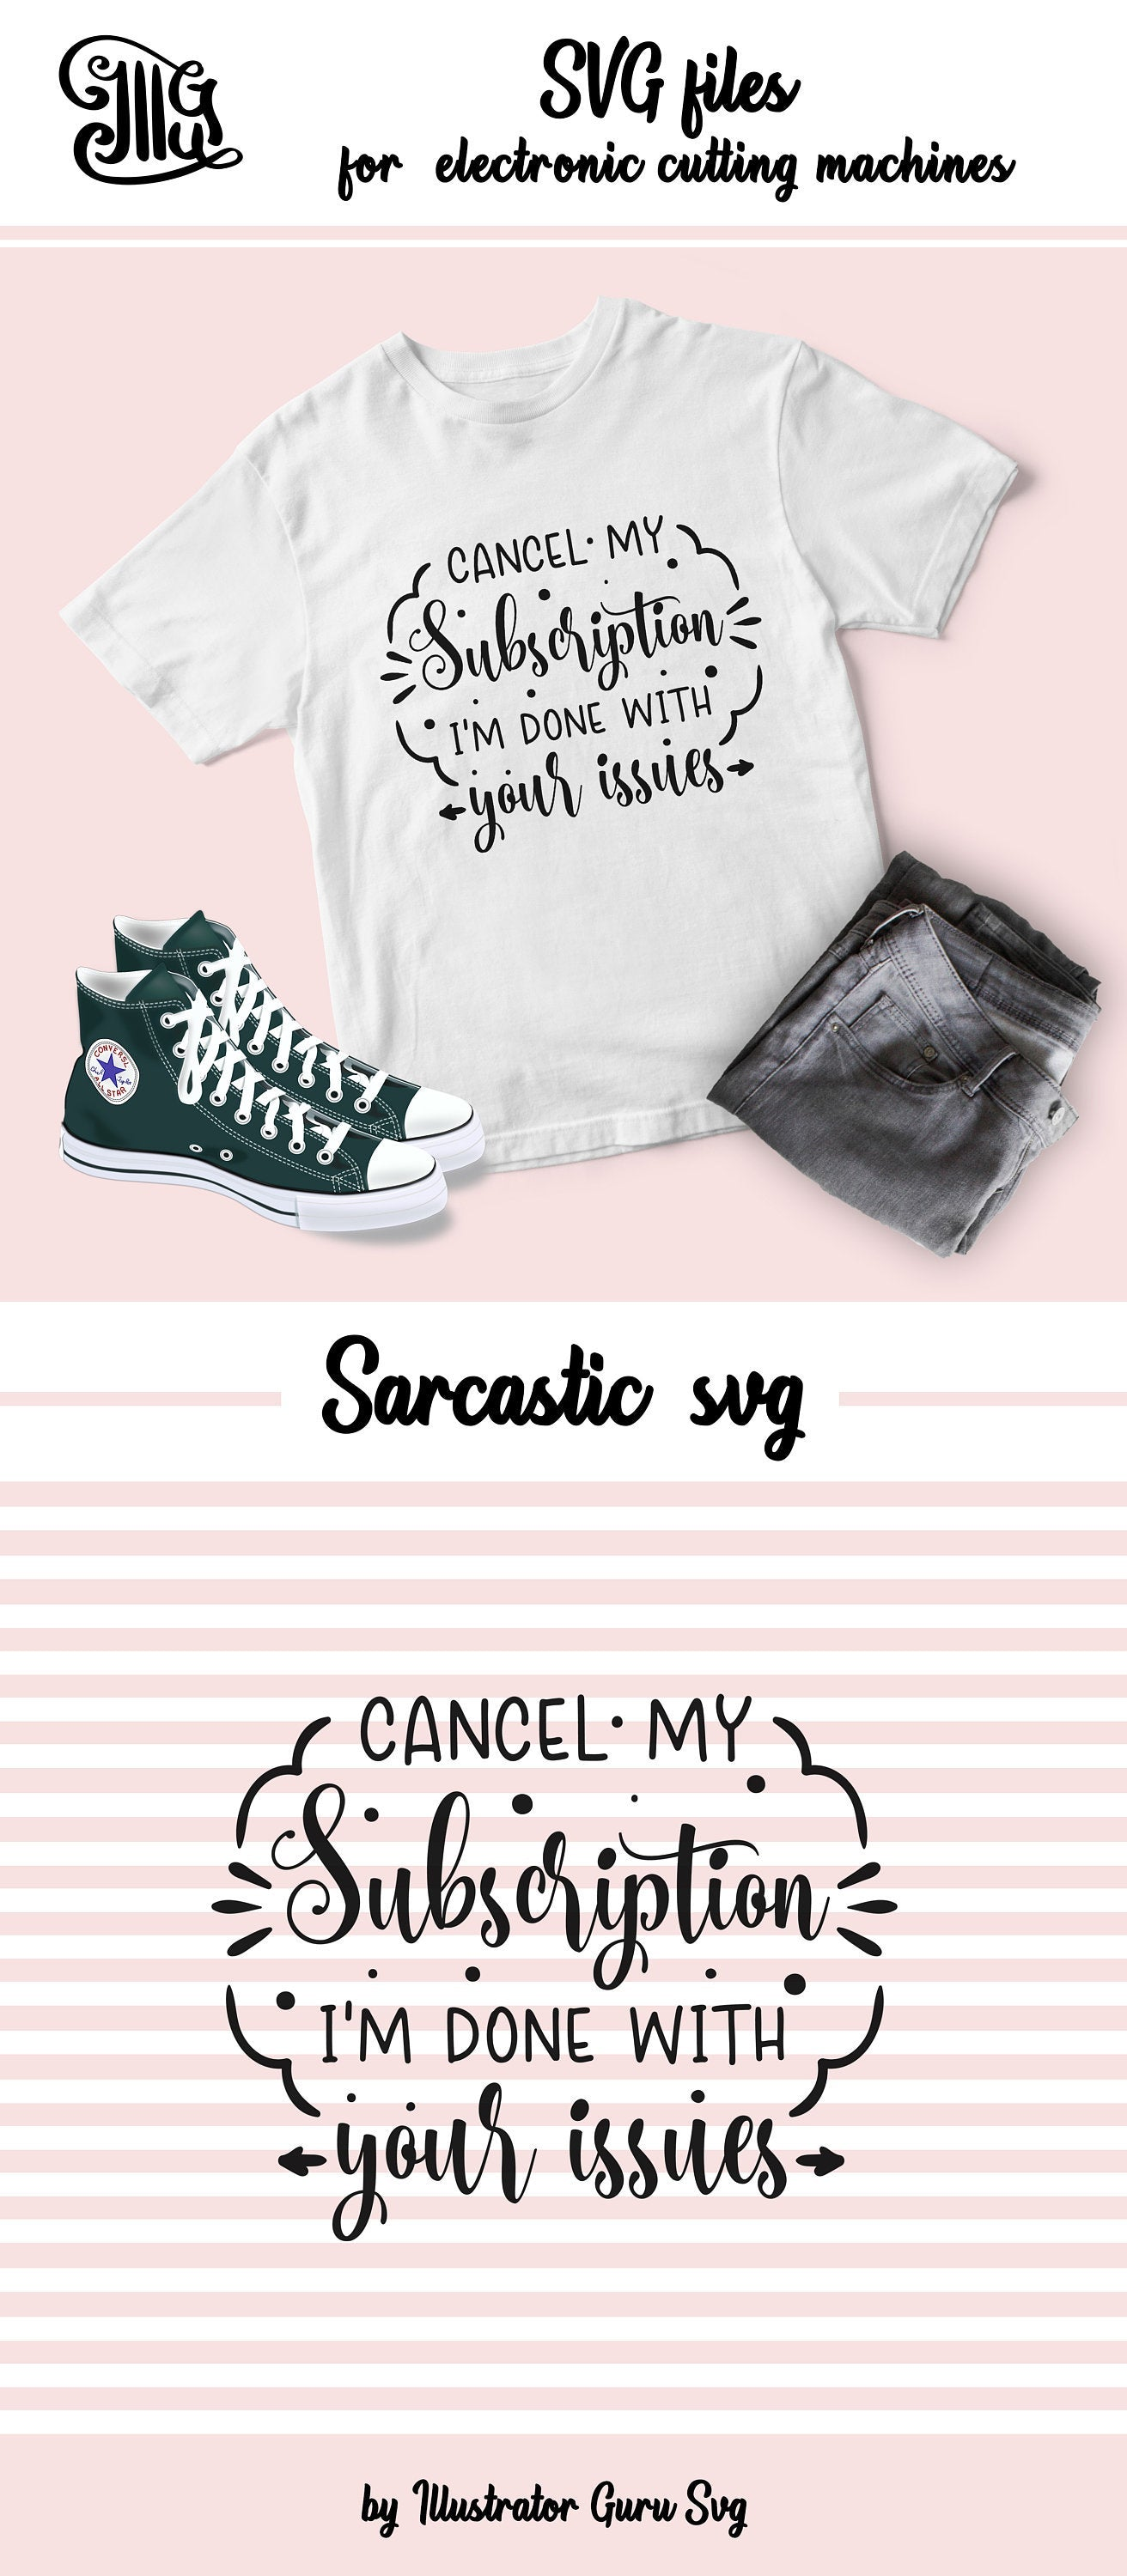 Cancel my subscription I'm done with your issues SVG, sarcastic svg, sarcasm svg, sarcastic girl svg, funny sarcastic svg, sarcasm clipart,-by Illustrator Guru